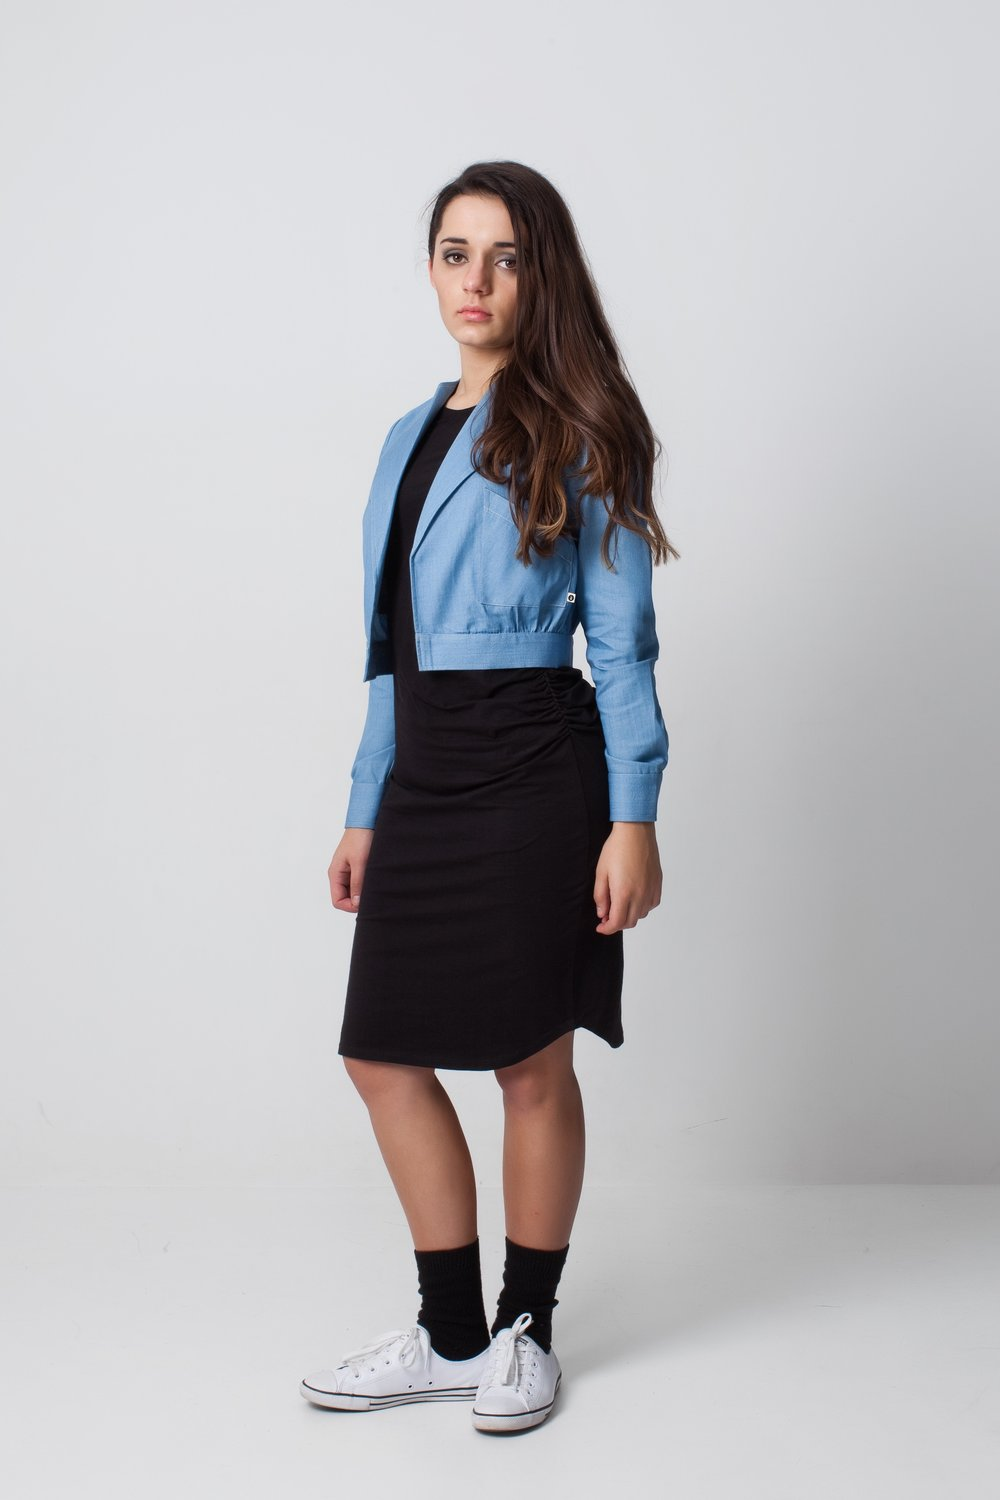 This is a great combination - the LBD (little black dress) with a denim cropped jacket